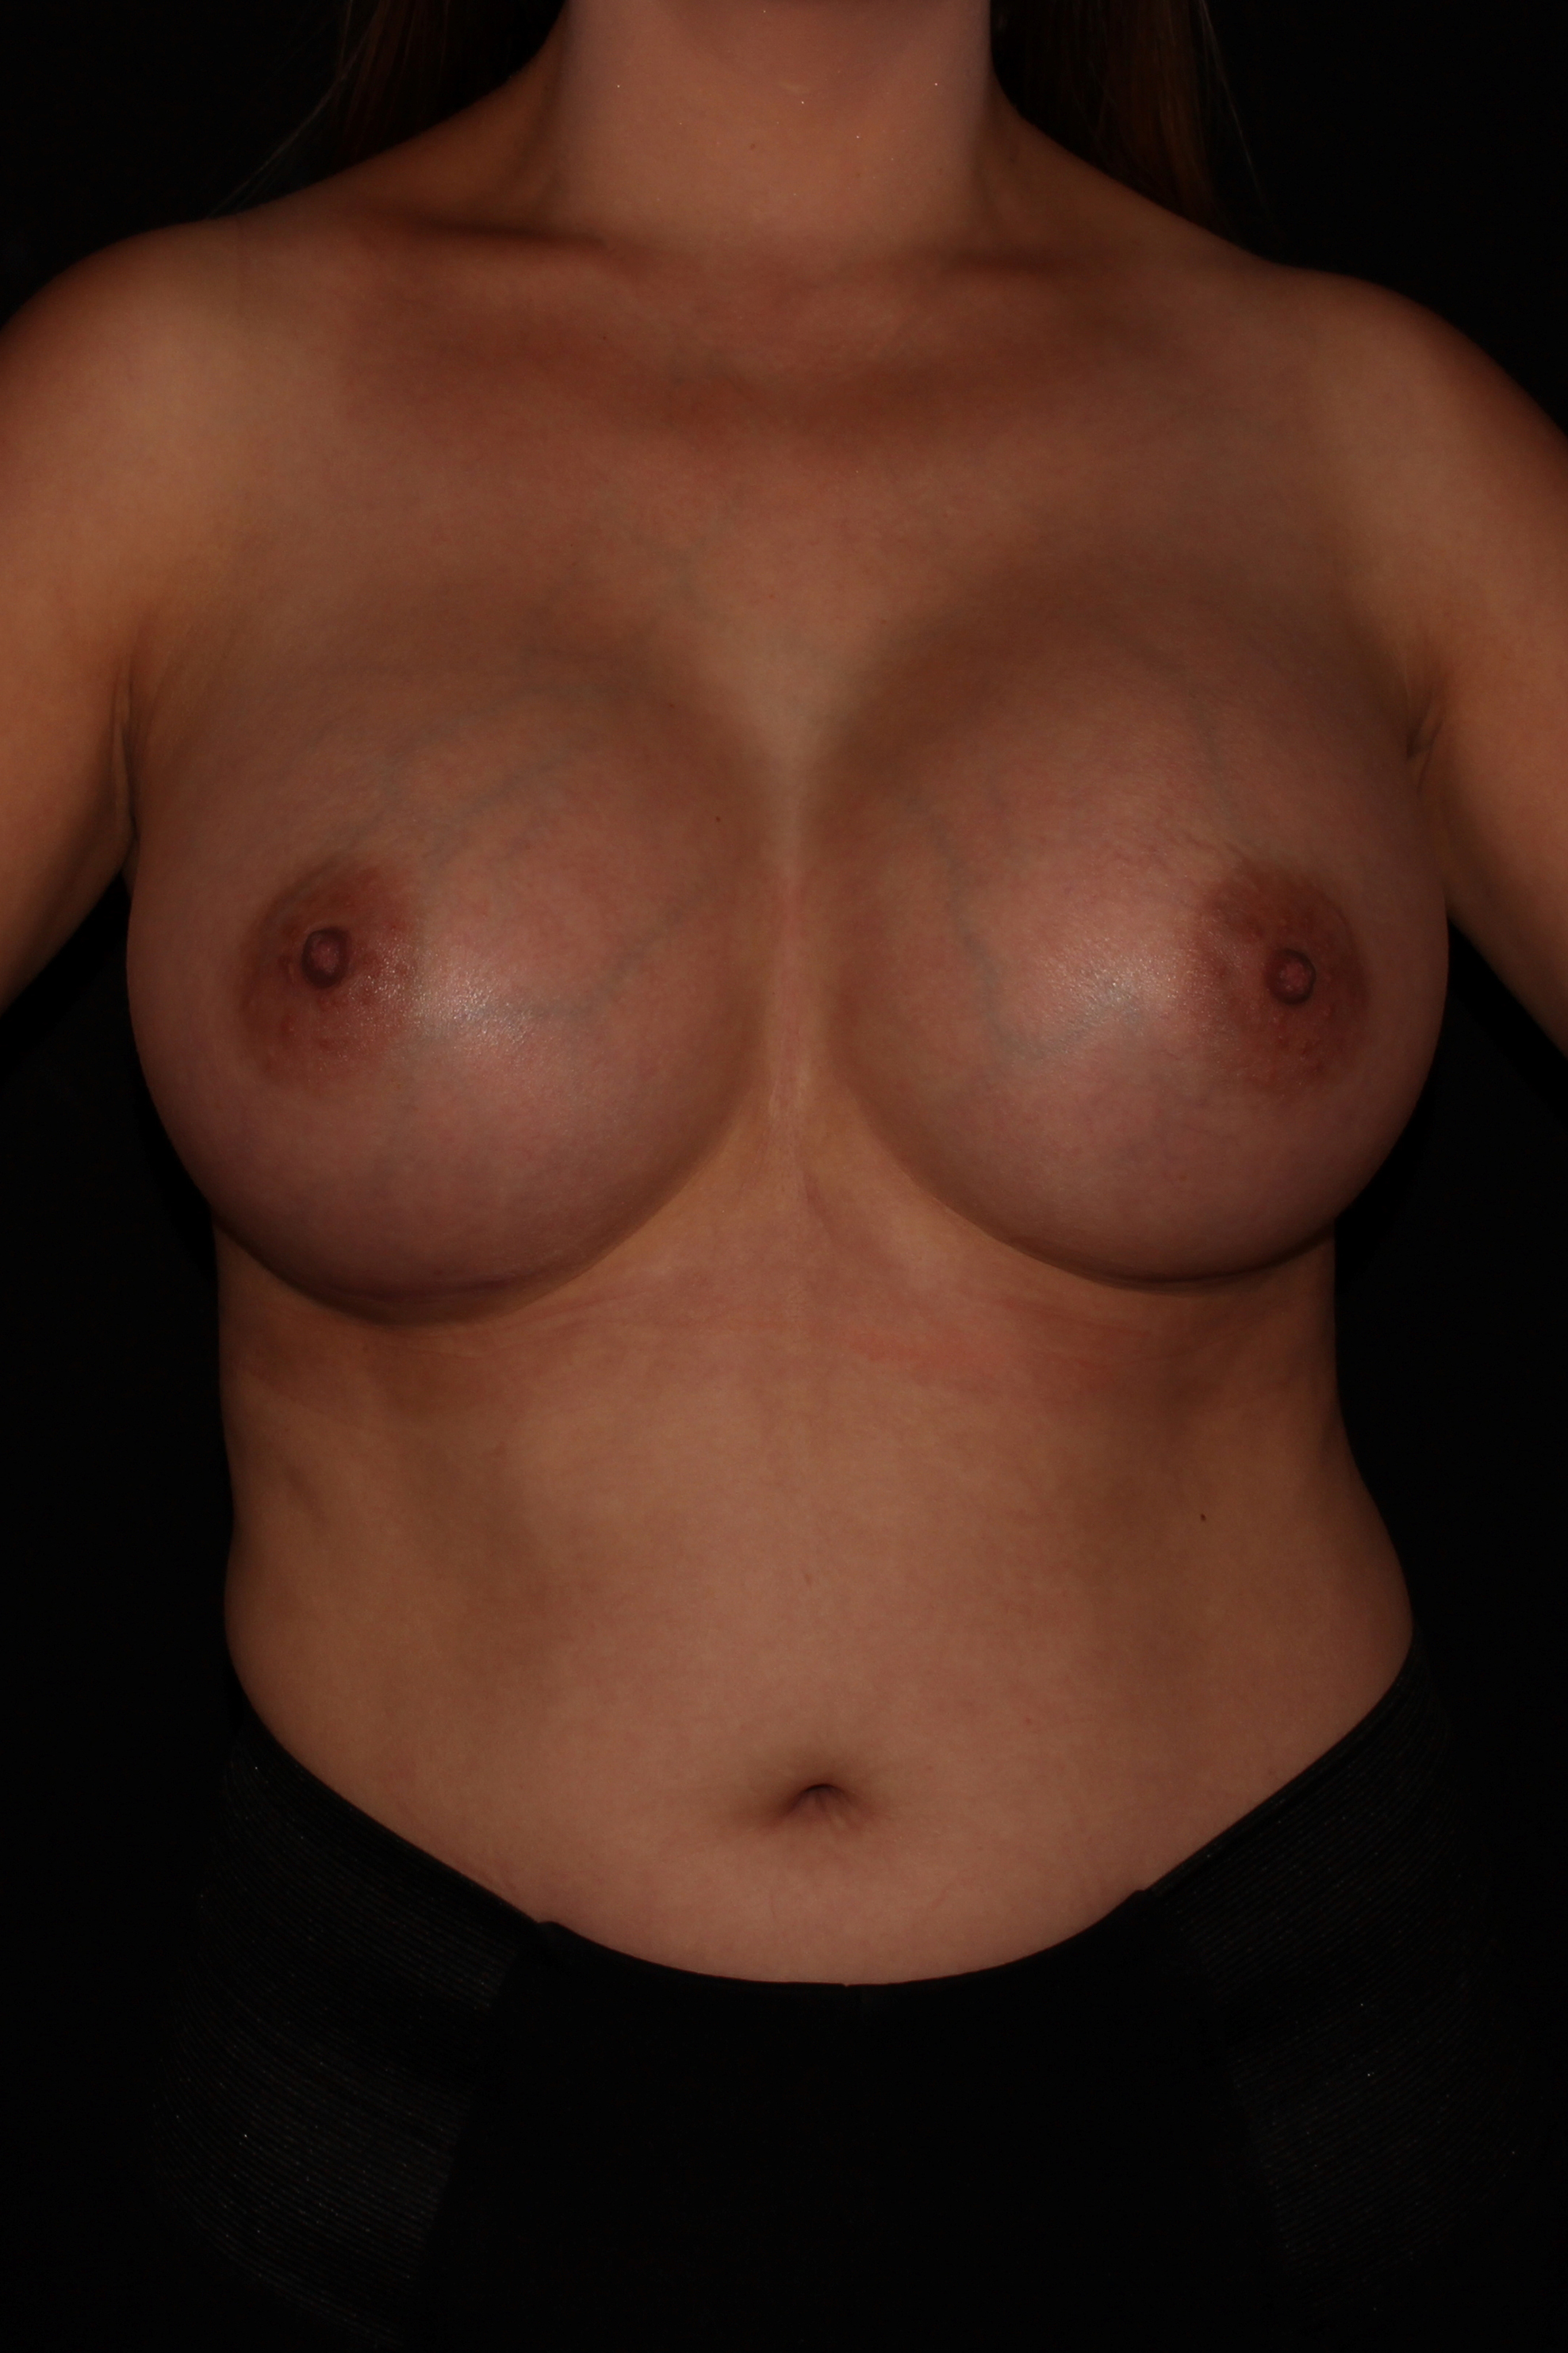 After Breast Augmentation - 550cc high profile silicone implants